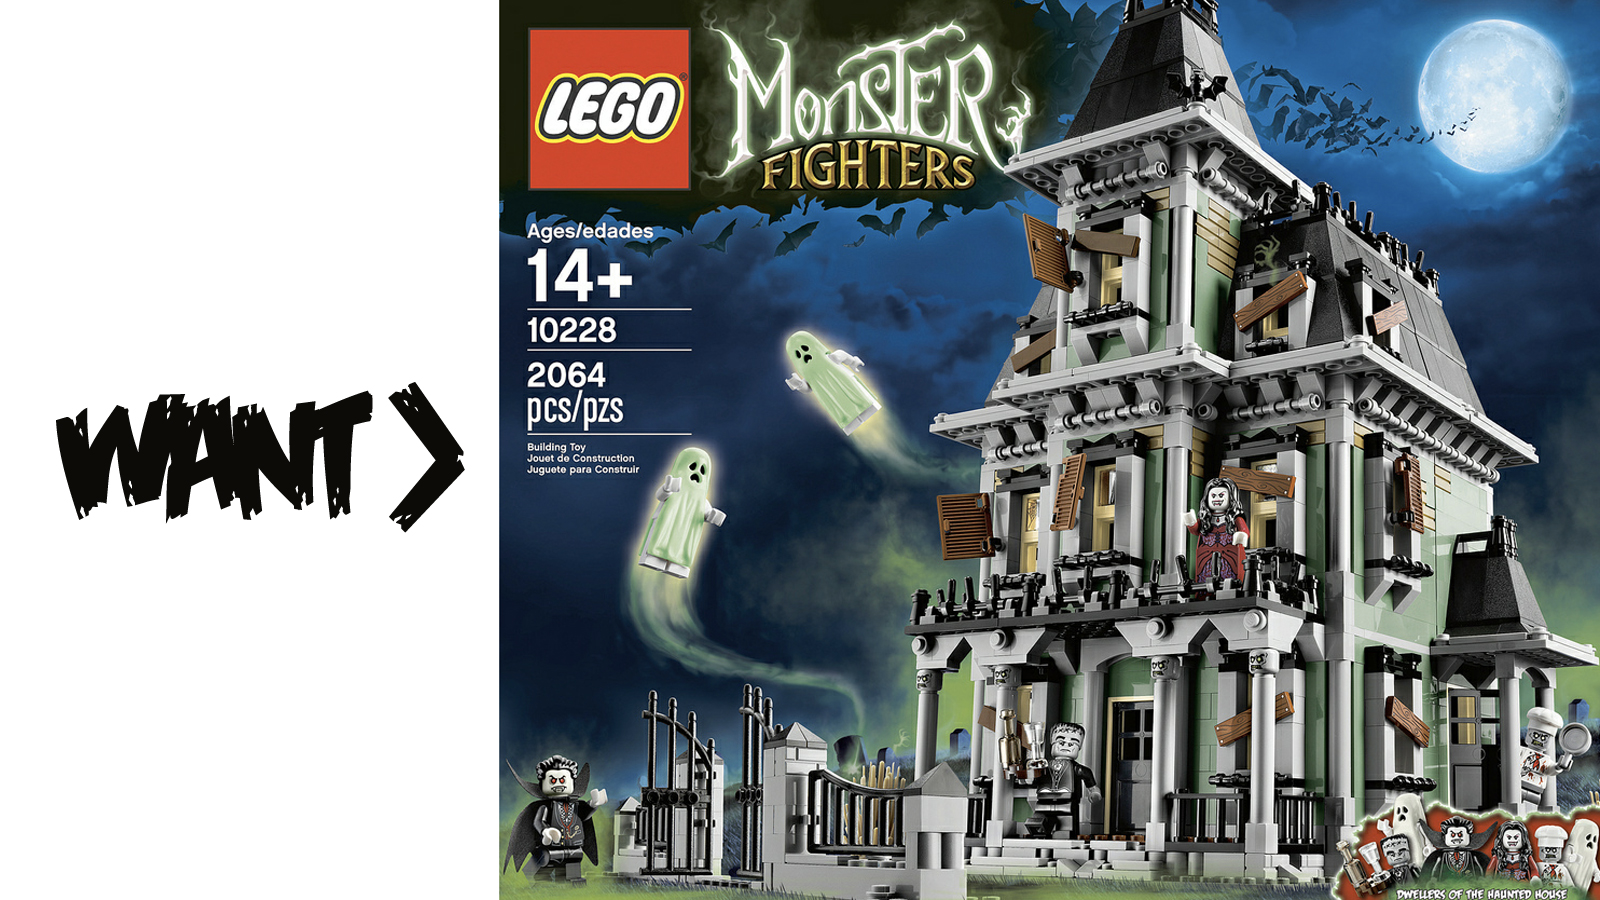 Click here to read Lego's Munsters' House Is Not Really the Munsters' But Close Enough